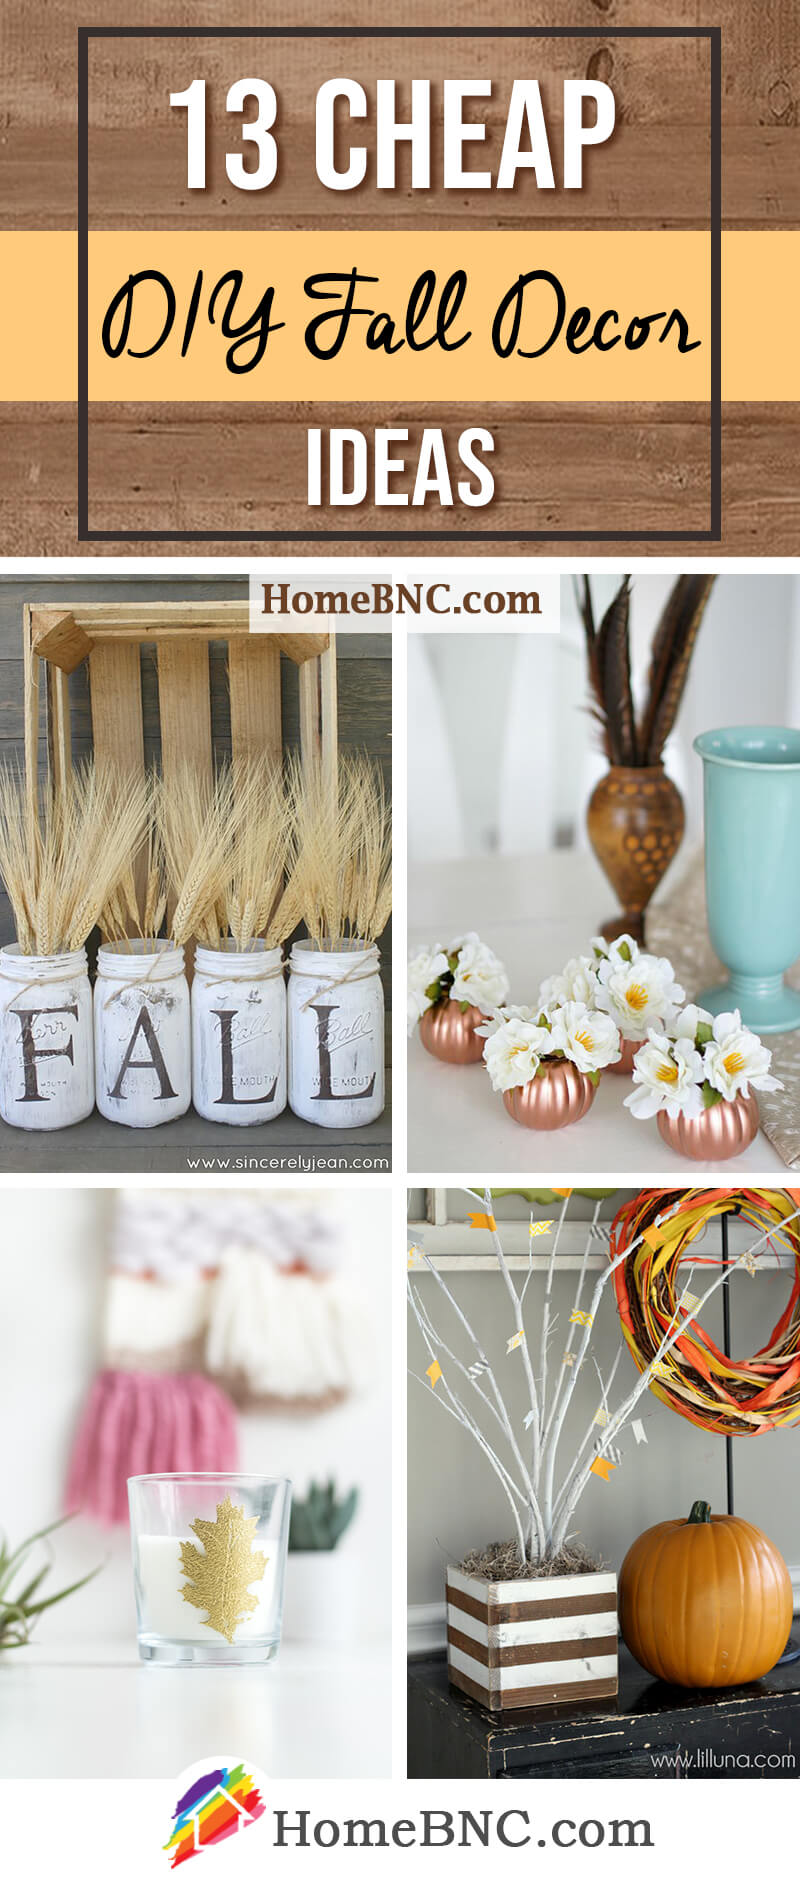 13 Best Cheap DIY Fall Decor Ideas and Designs for 2020